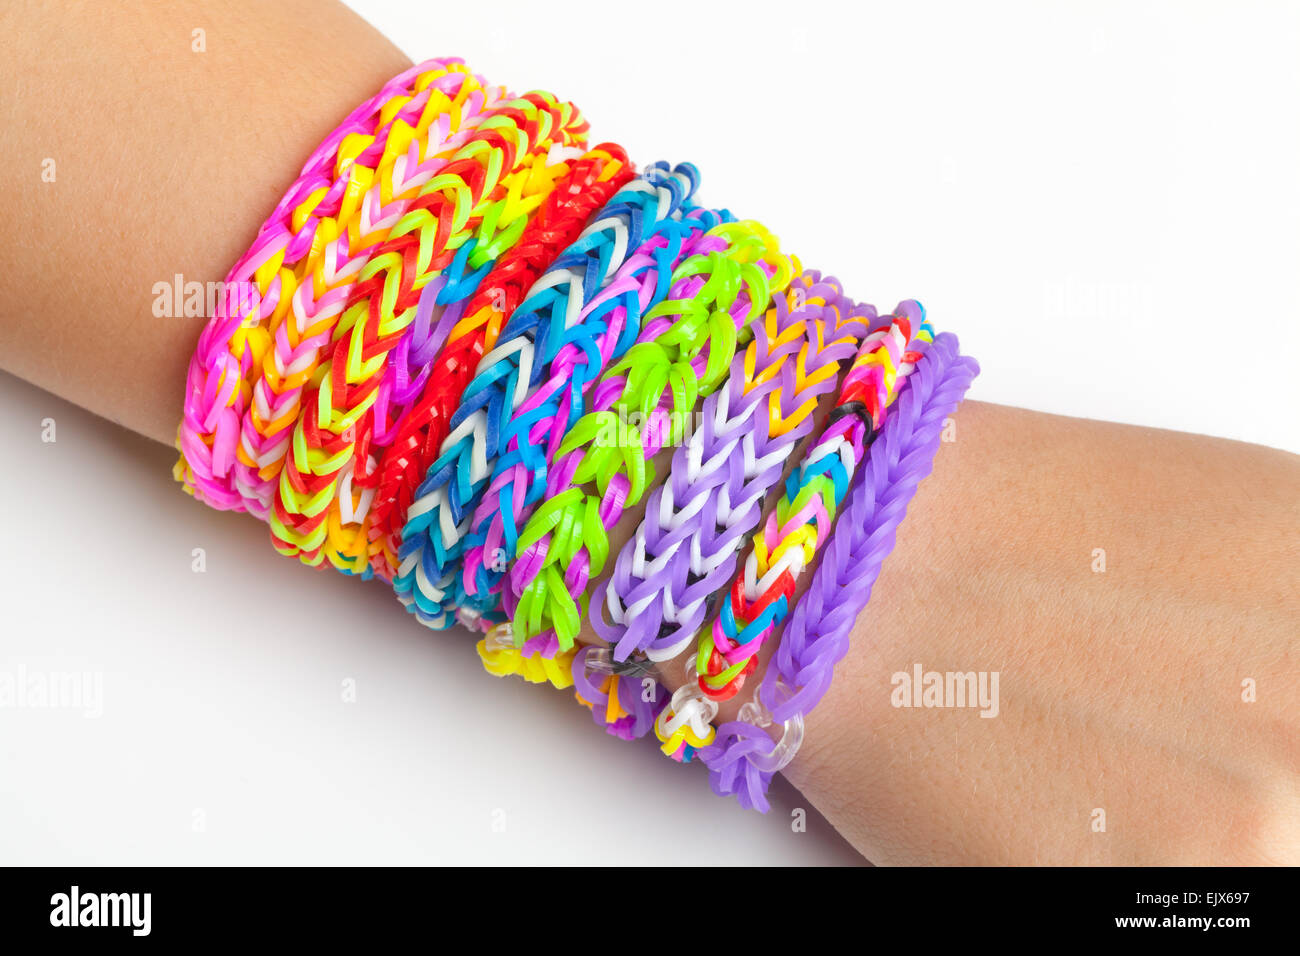 Colorful Rubber Rainbow Loom Band Bracelets On Hand Trendy Kids